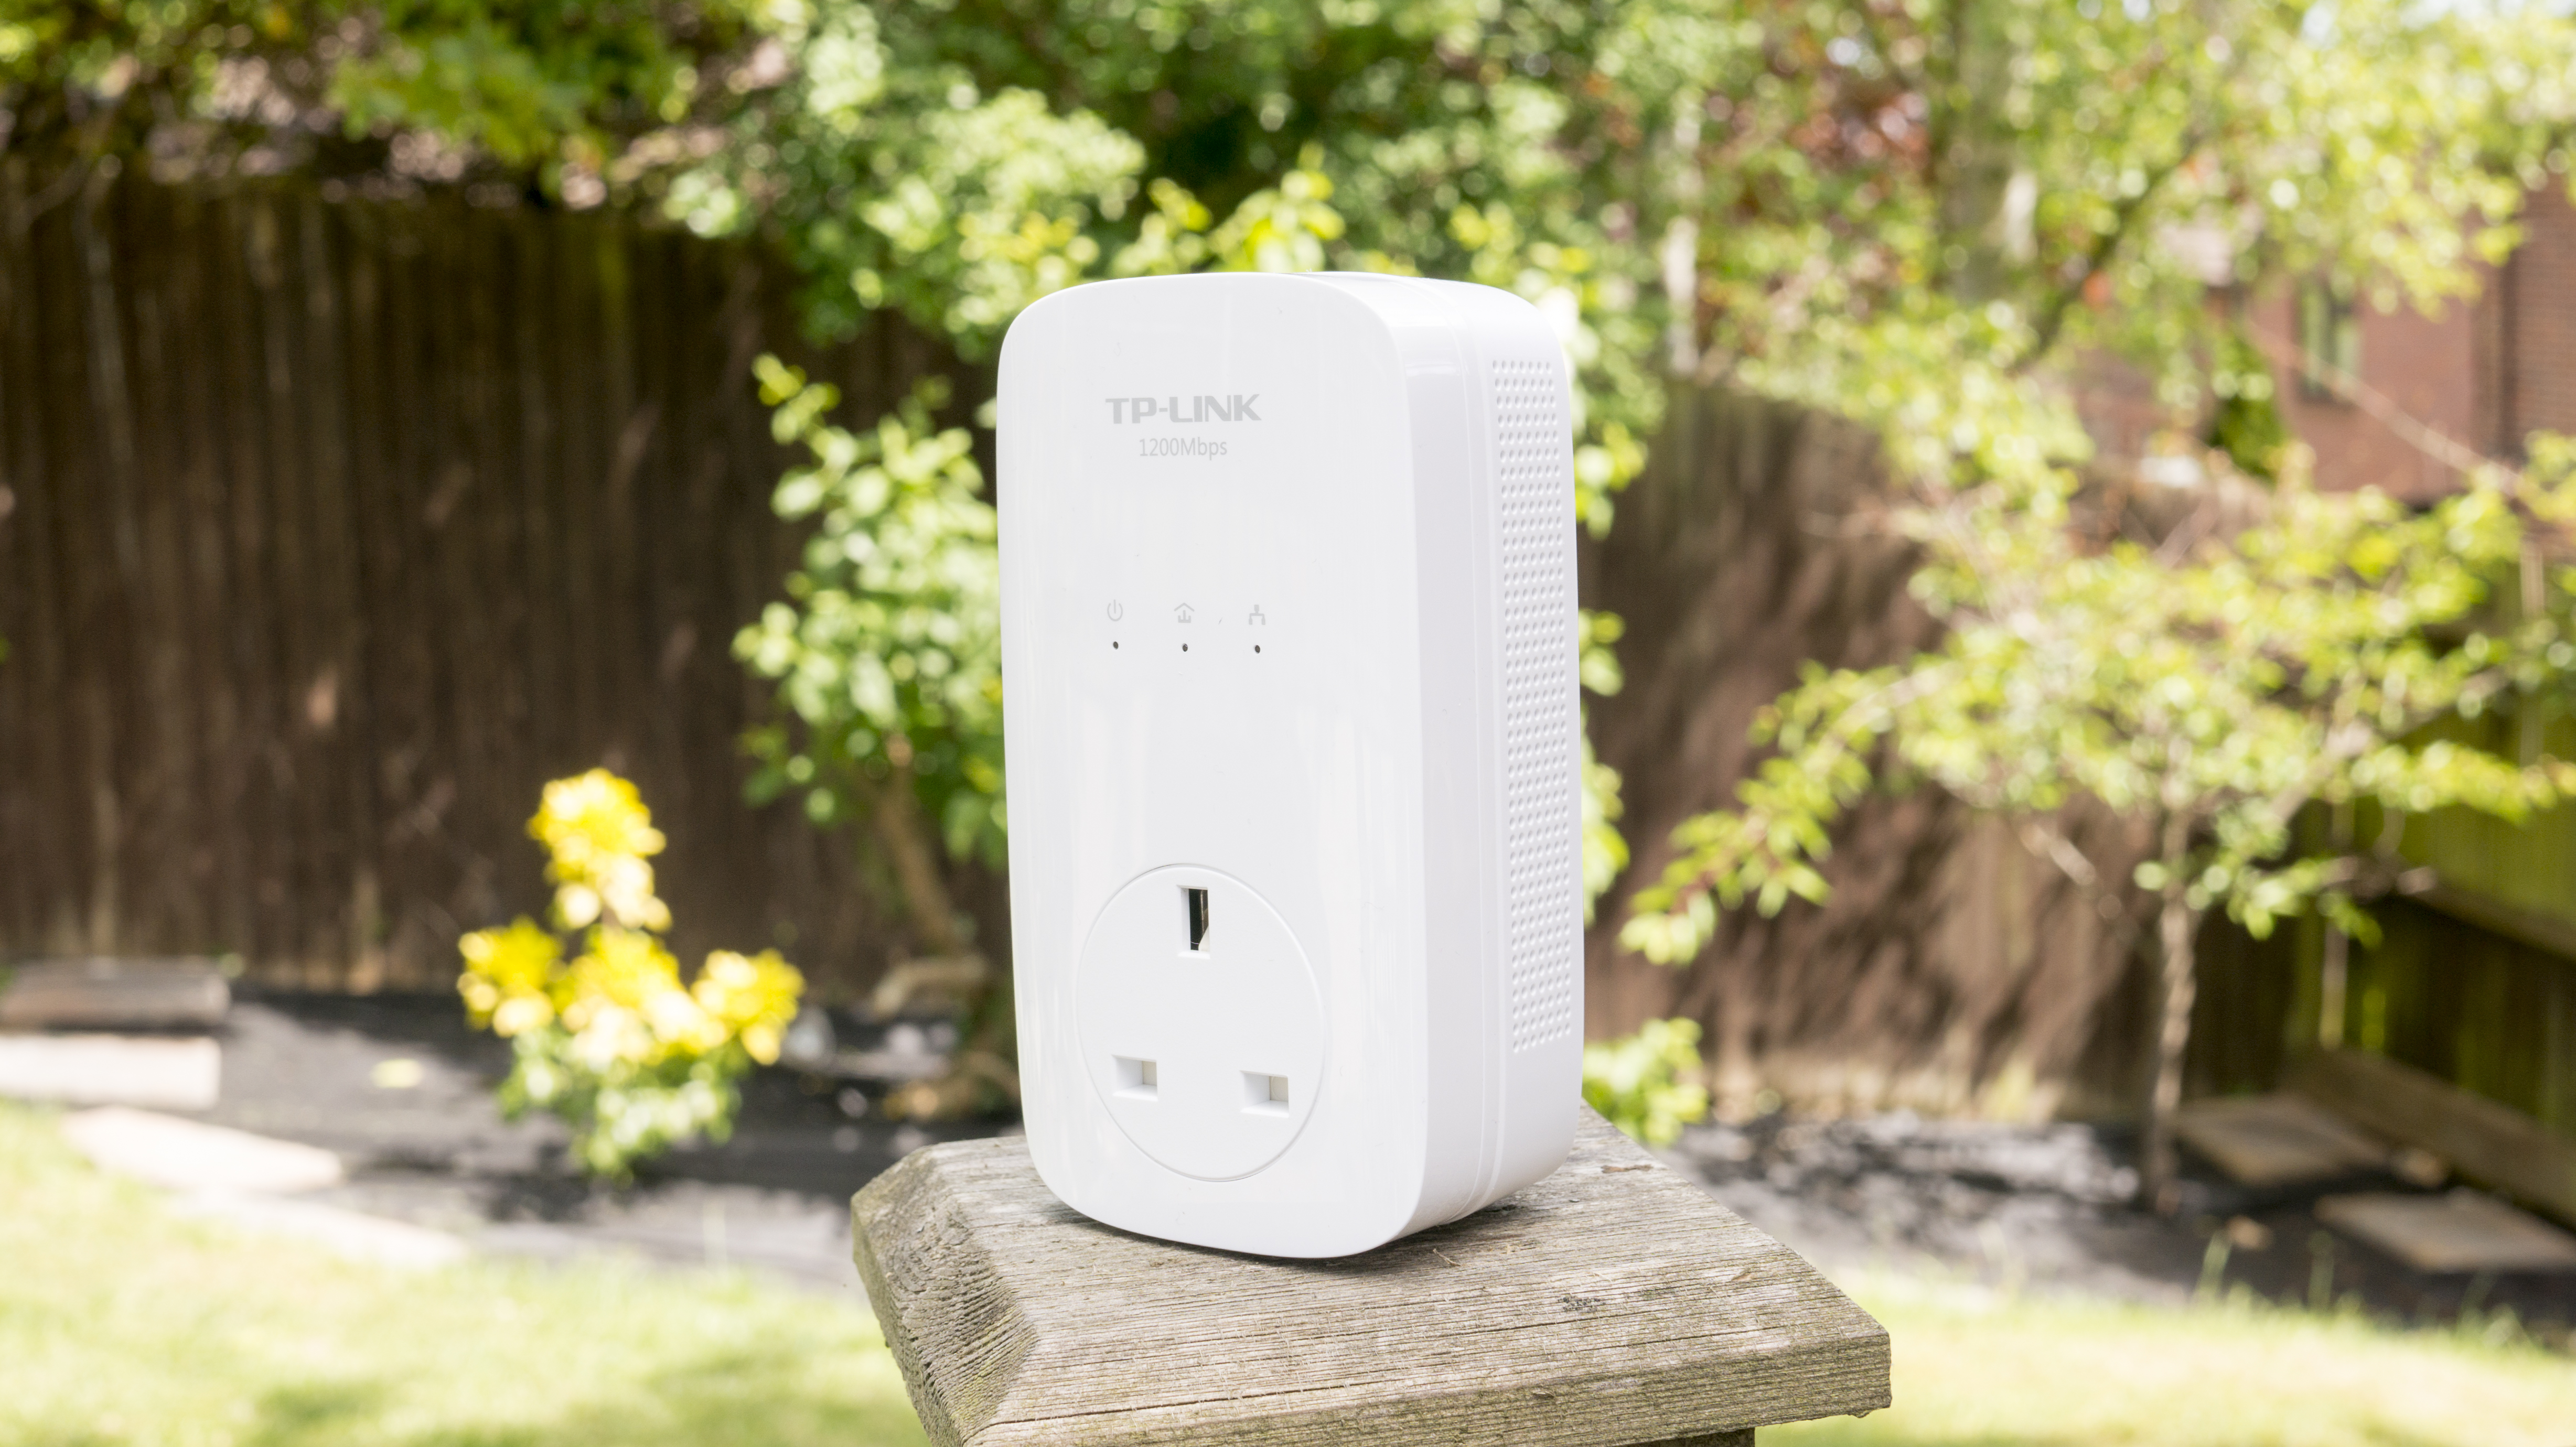 Tp Link Av1200 Powerline Adapters Review Broadband Modem All You Do Plug One In A Wall Socket Near The Internet Or Router Run Generously Long Ethernet Cable Between Two